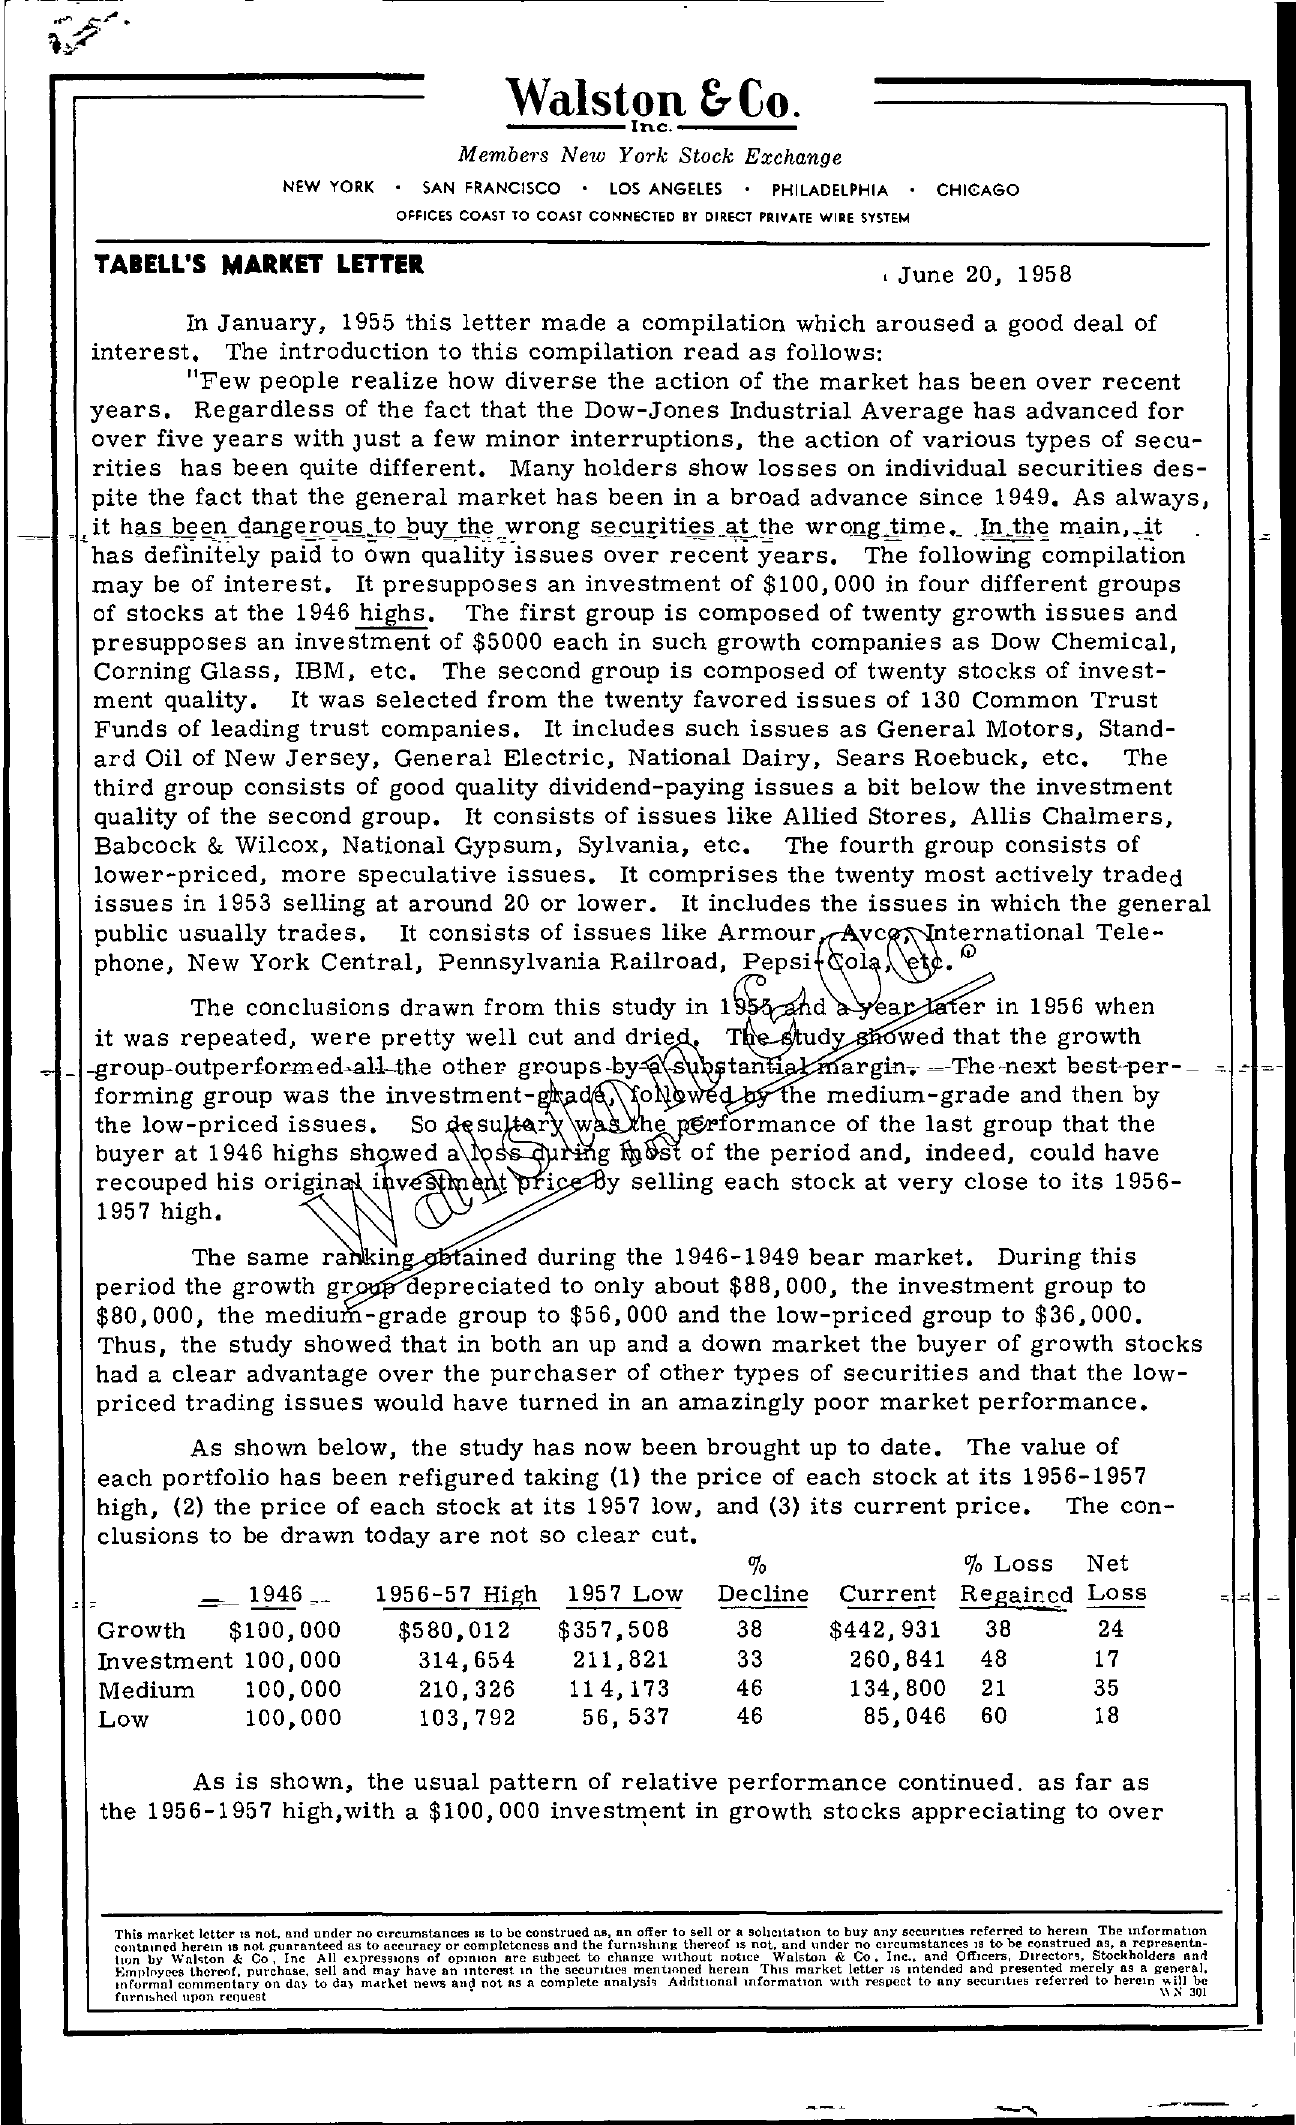 Tabell's Market Letter - June 20, 1958 page 1